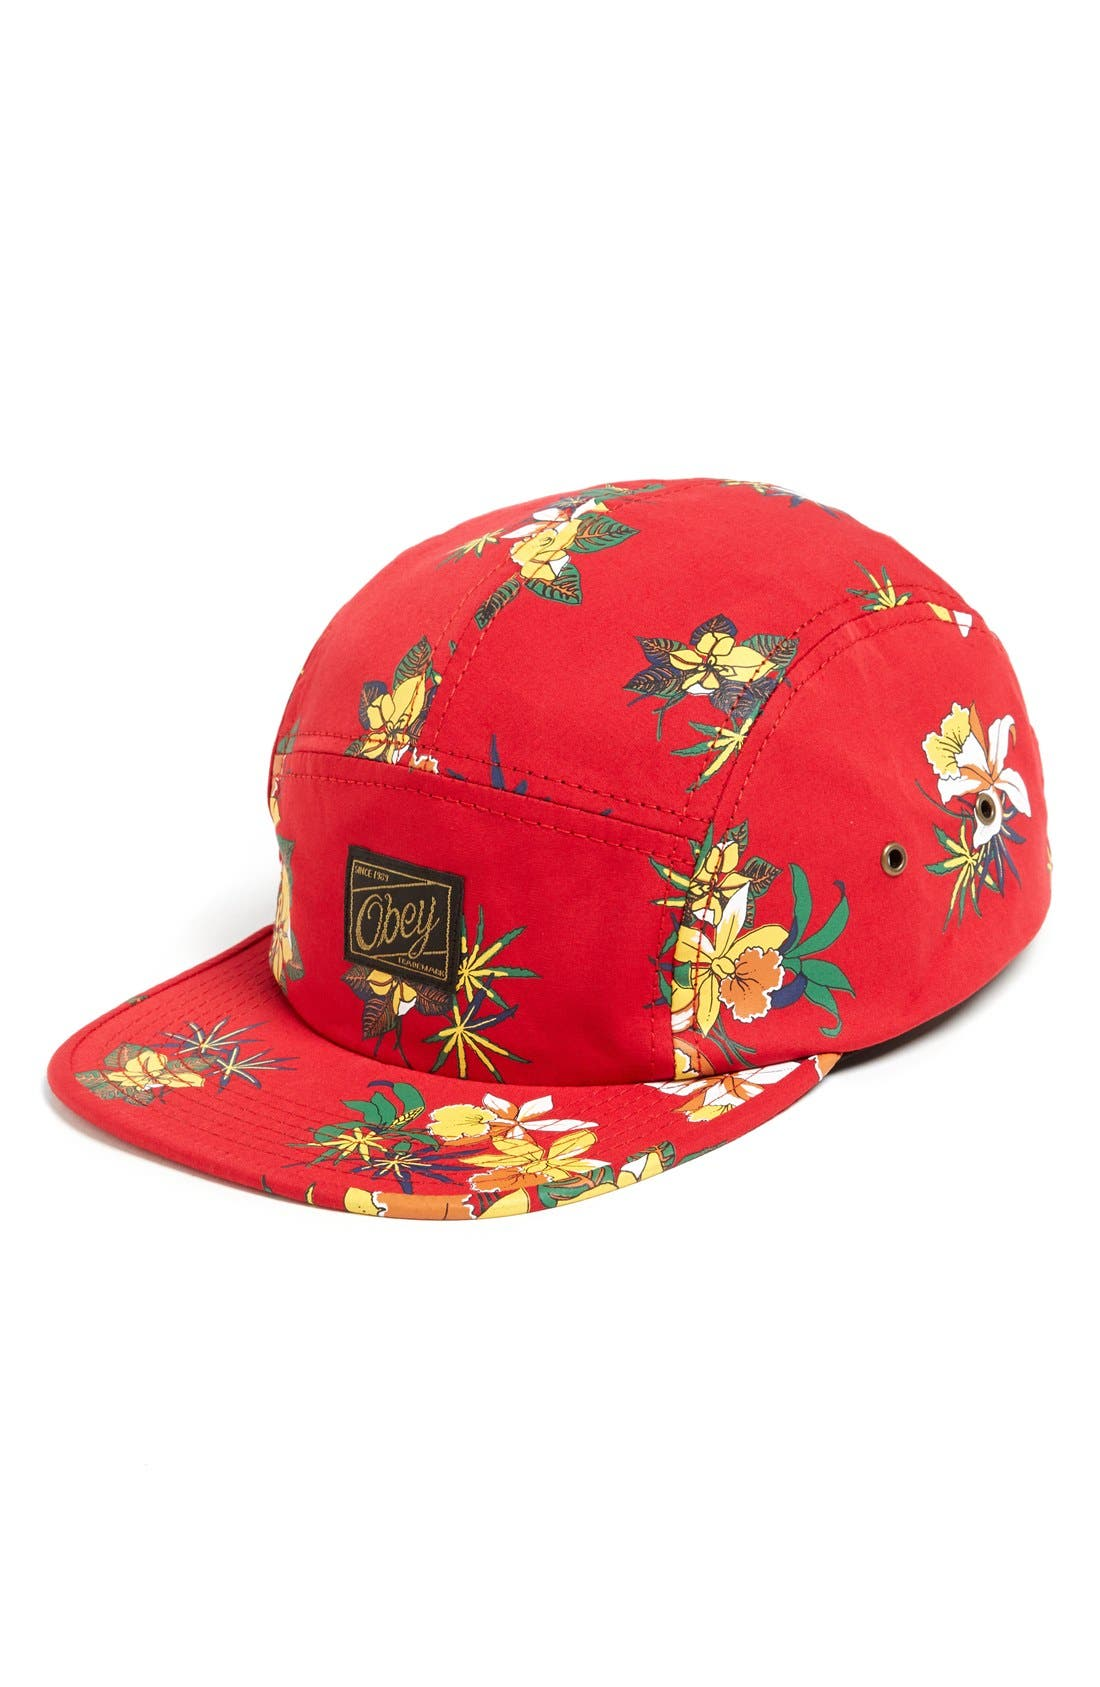 Main Image - Obey Floral Print Five-Panel Cap